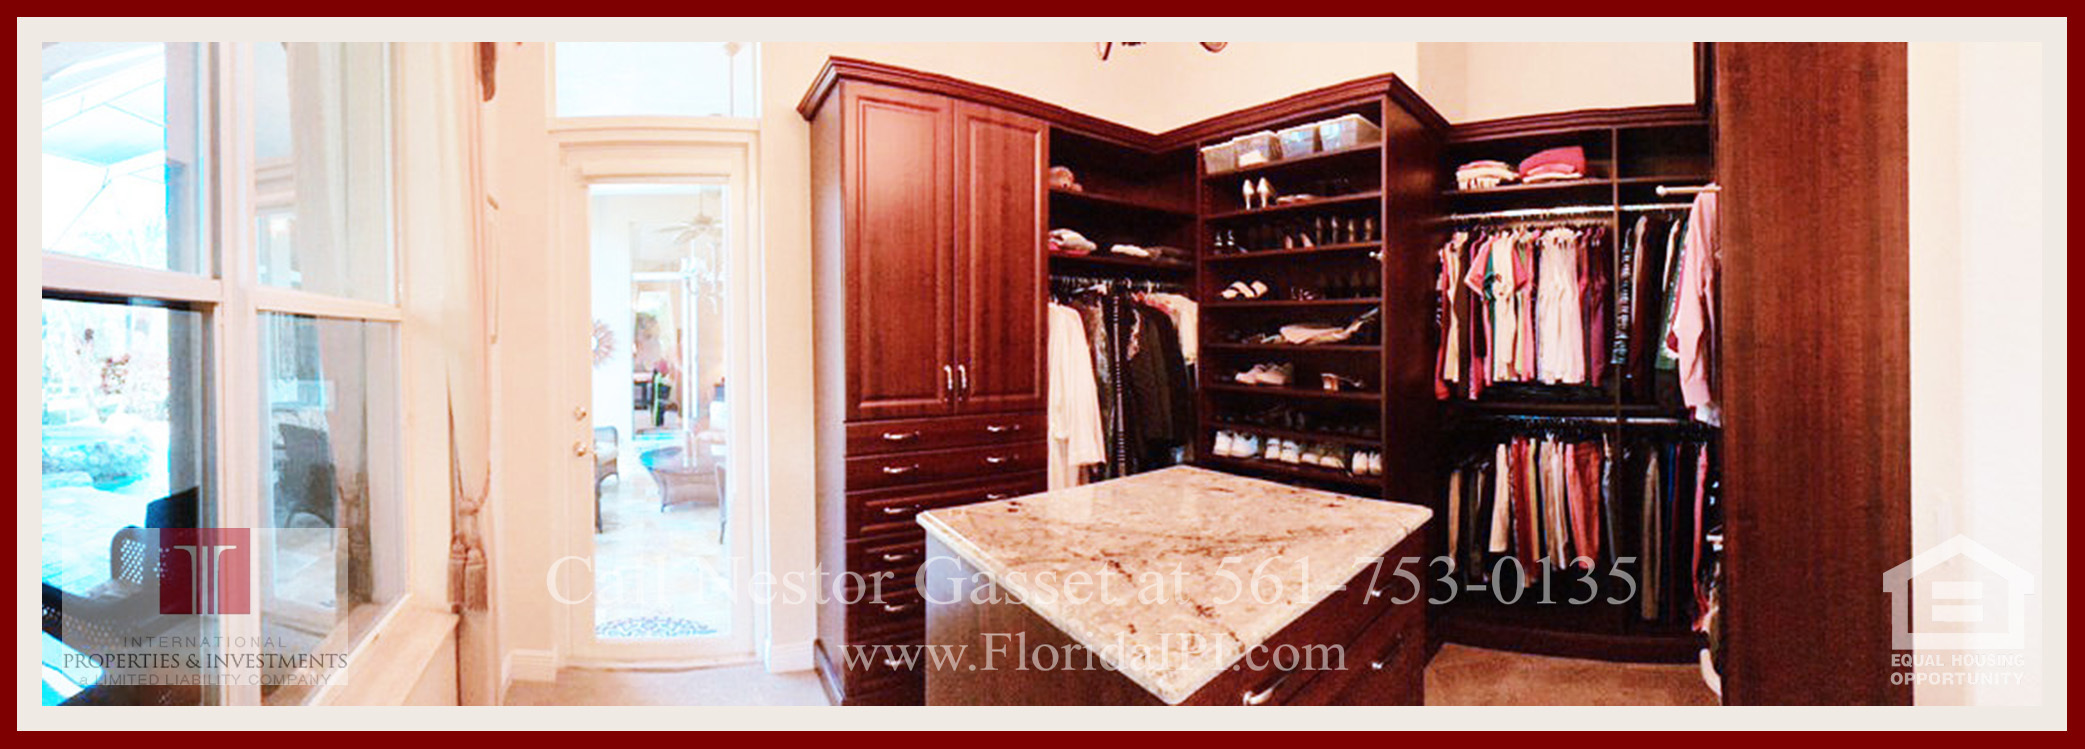 West Palm Beach Fl golf course community estate home for sale  - The custom California walk-in closet of this home for sale in The Preserve at Ironhorse has been added by the seller, so it's a unique feature to this home.